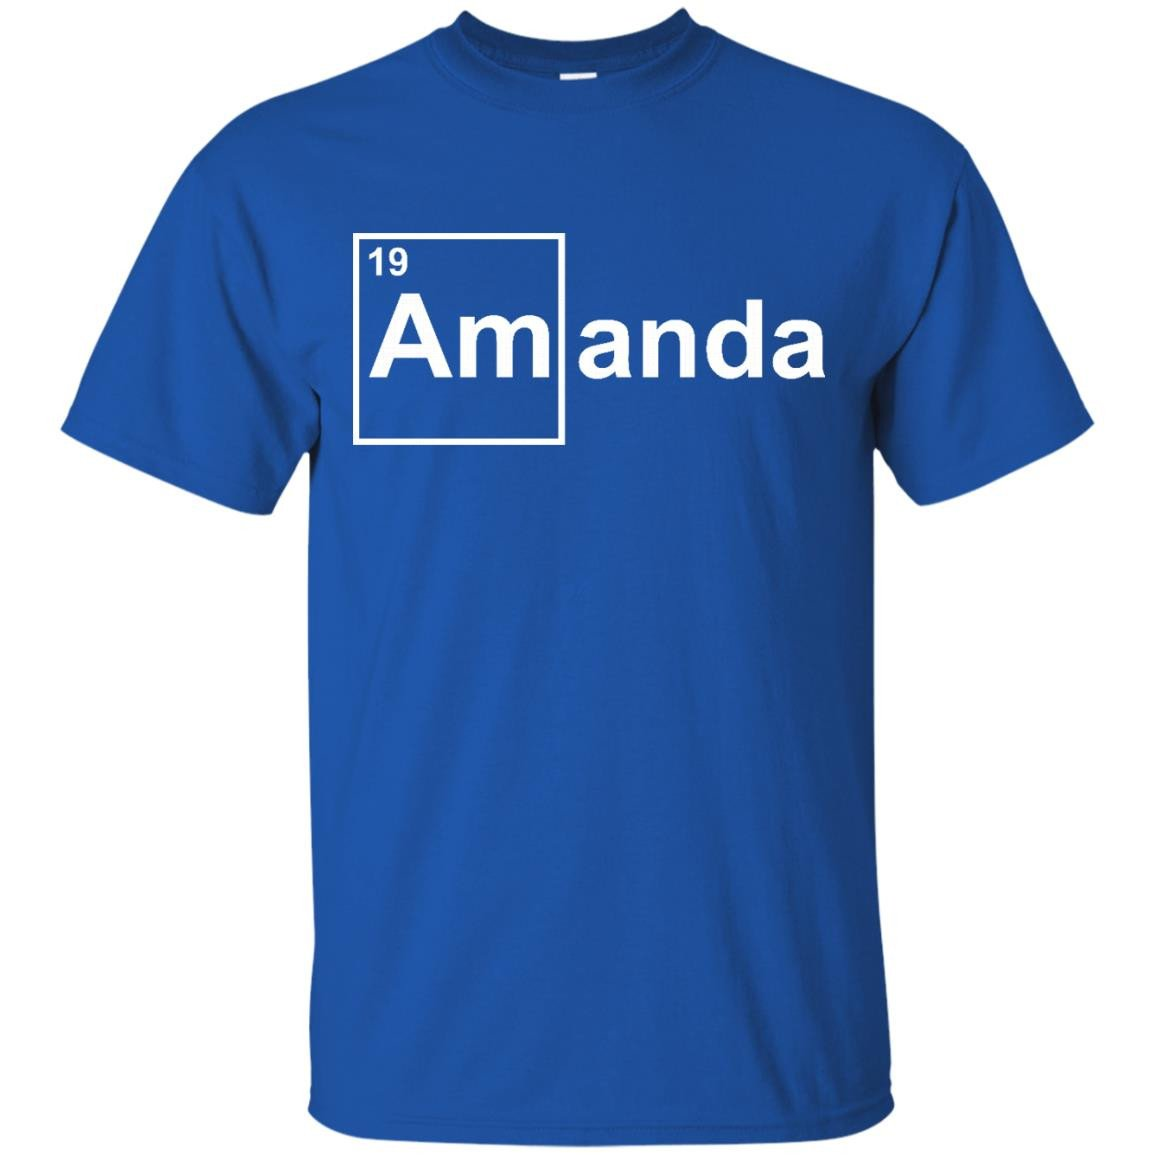 Amanda Chemical Elements Shirts I'm Amanda T-shirts Hoodies Sweatshirts